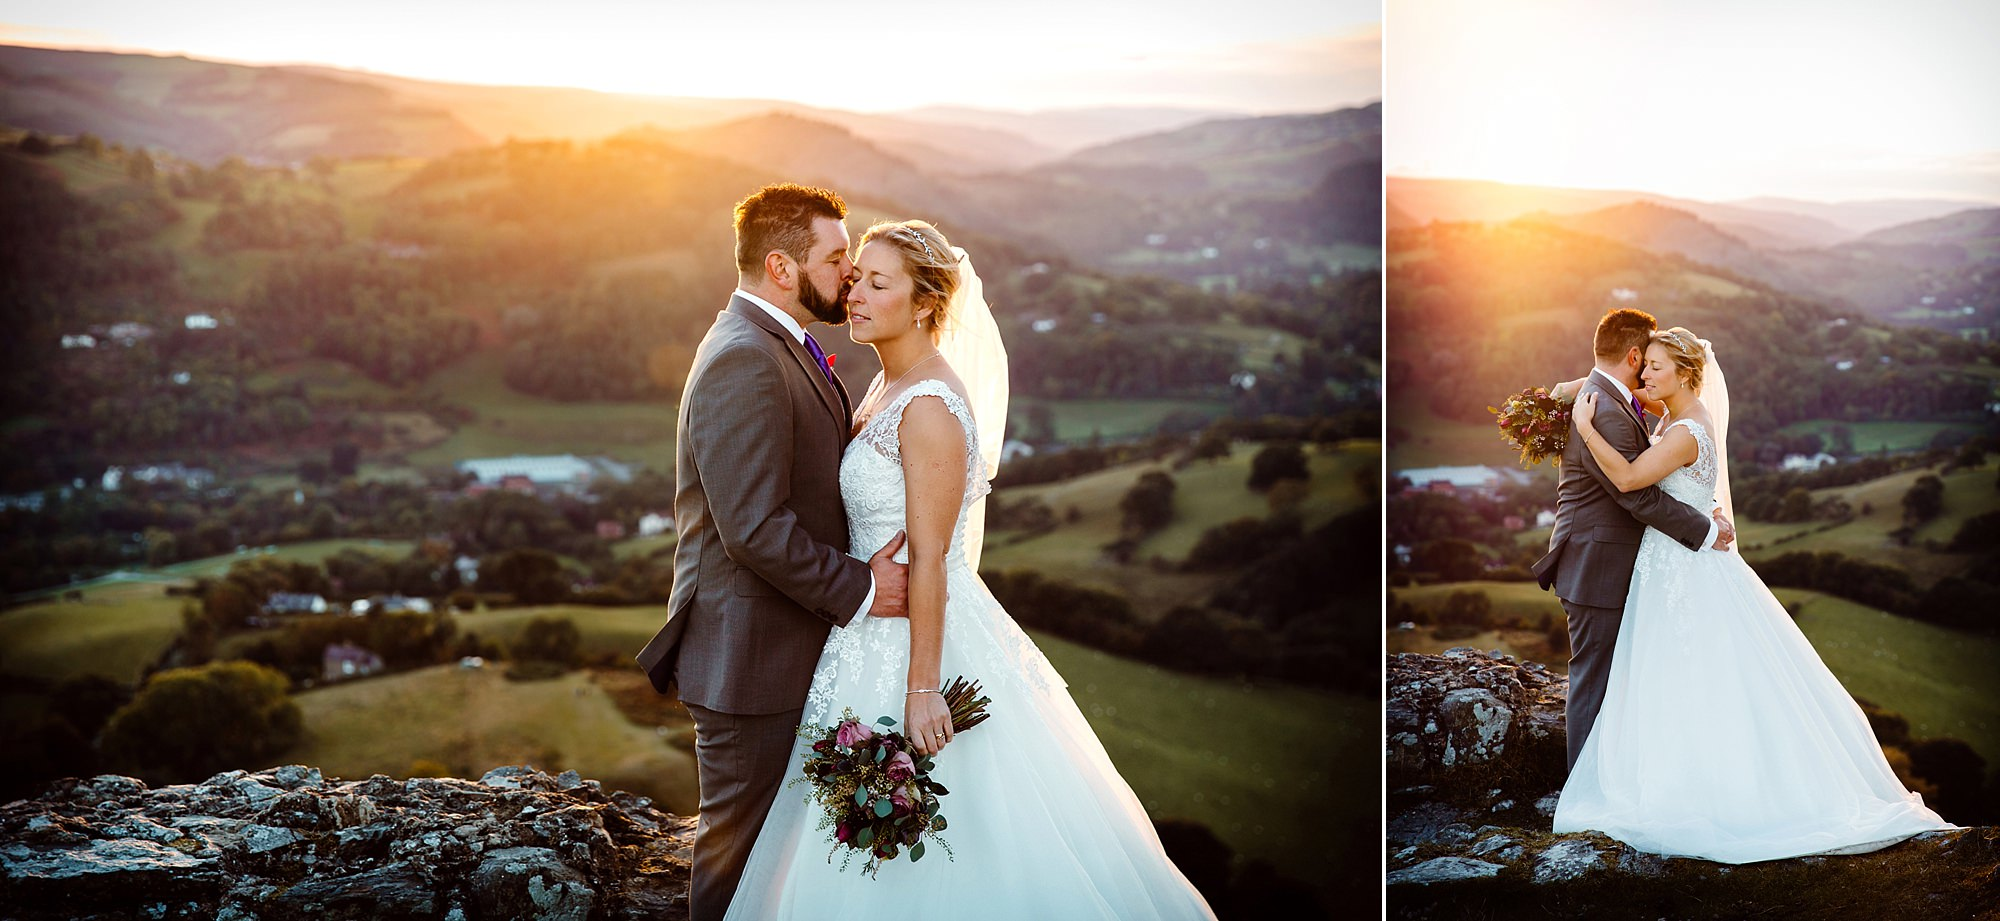 Castell dinas bran wedding photography portrait of bride and groom close together at sunset